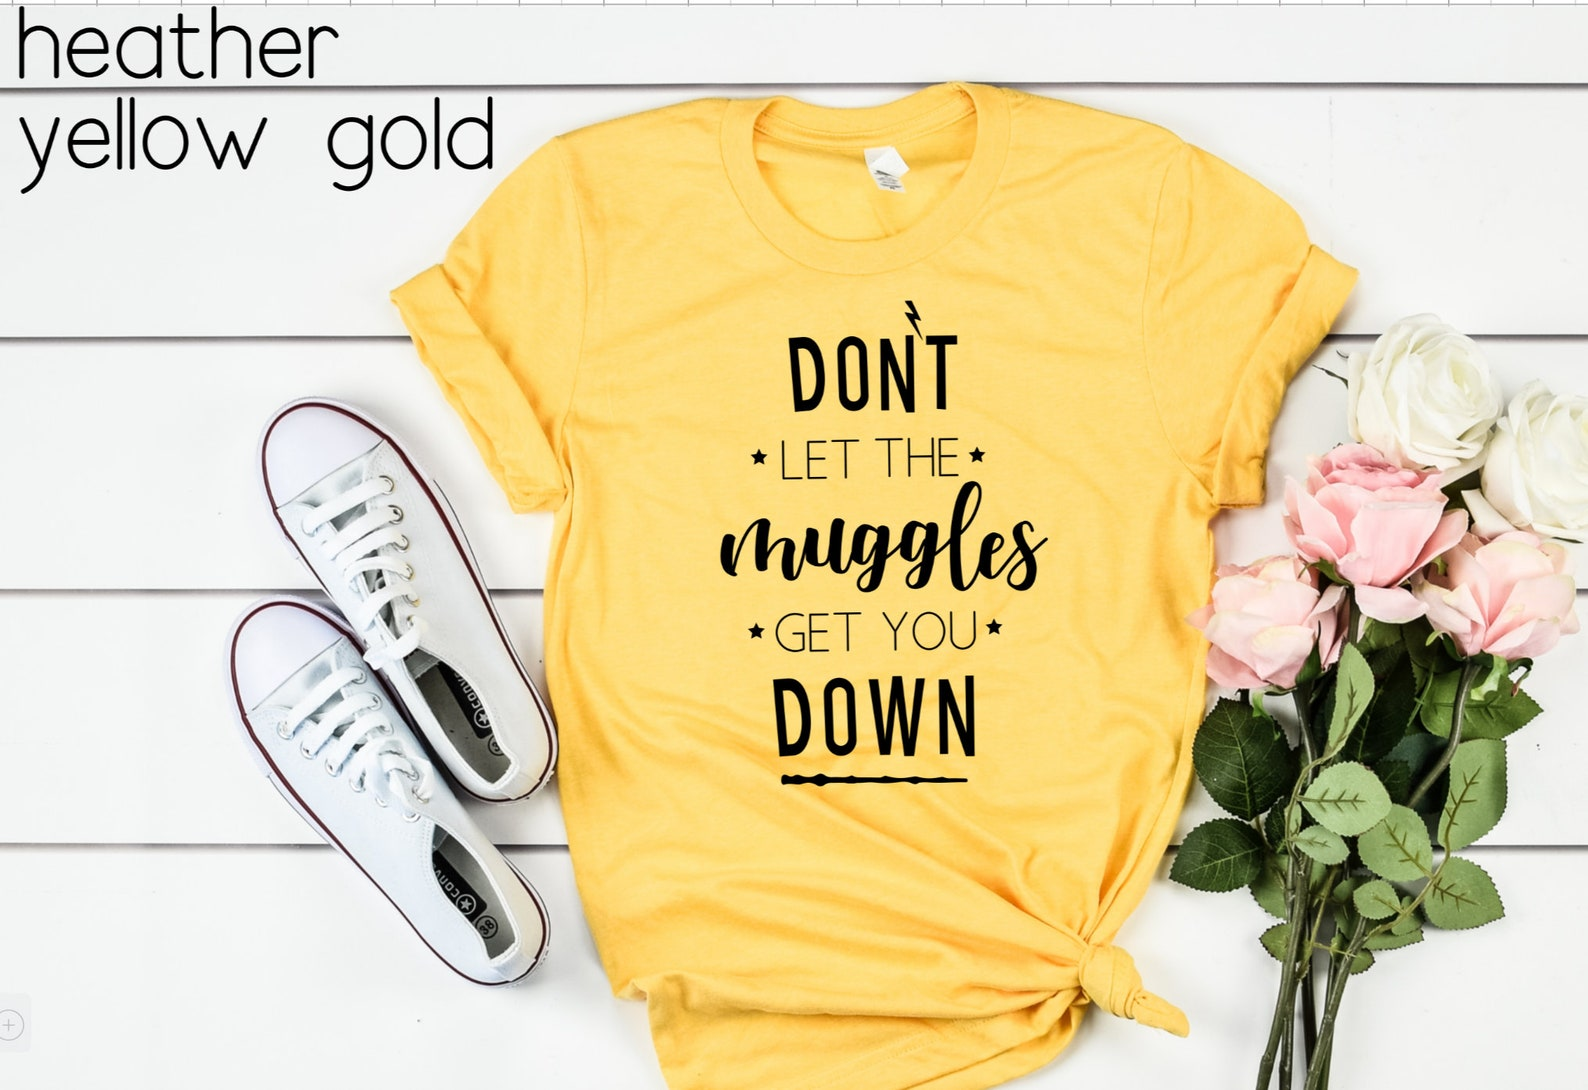 Harry Potter T-shirts that say don't let the muggles get you down